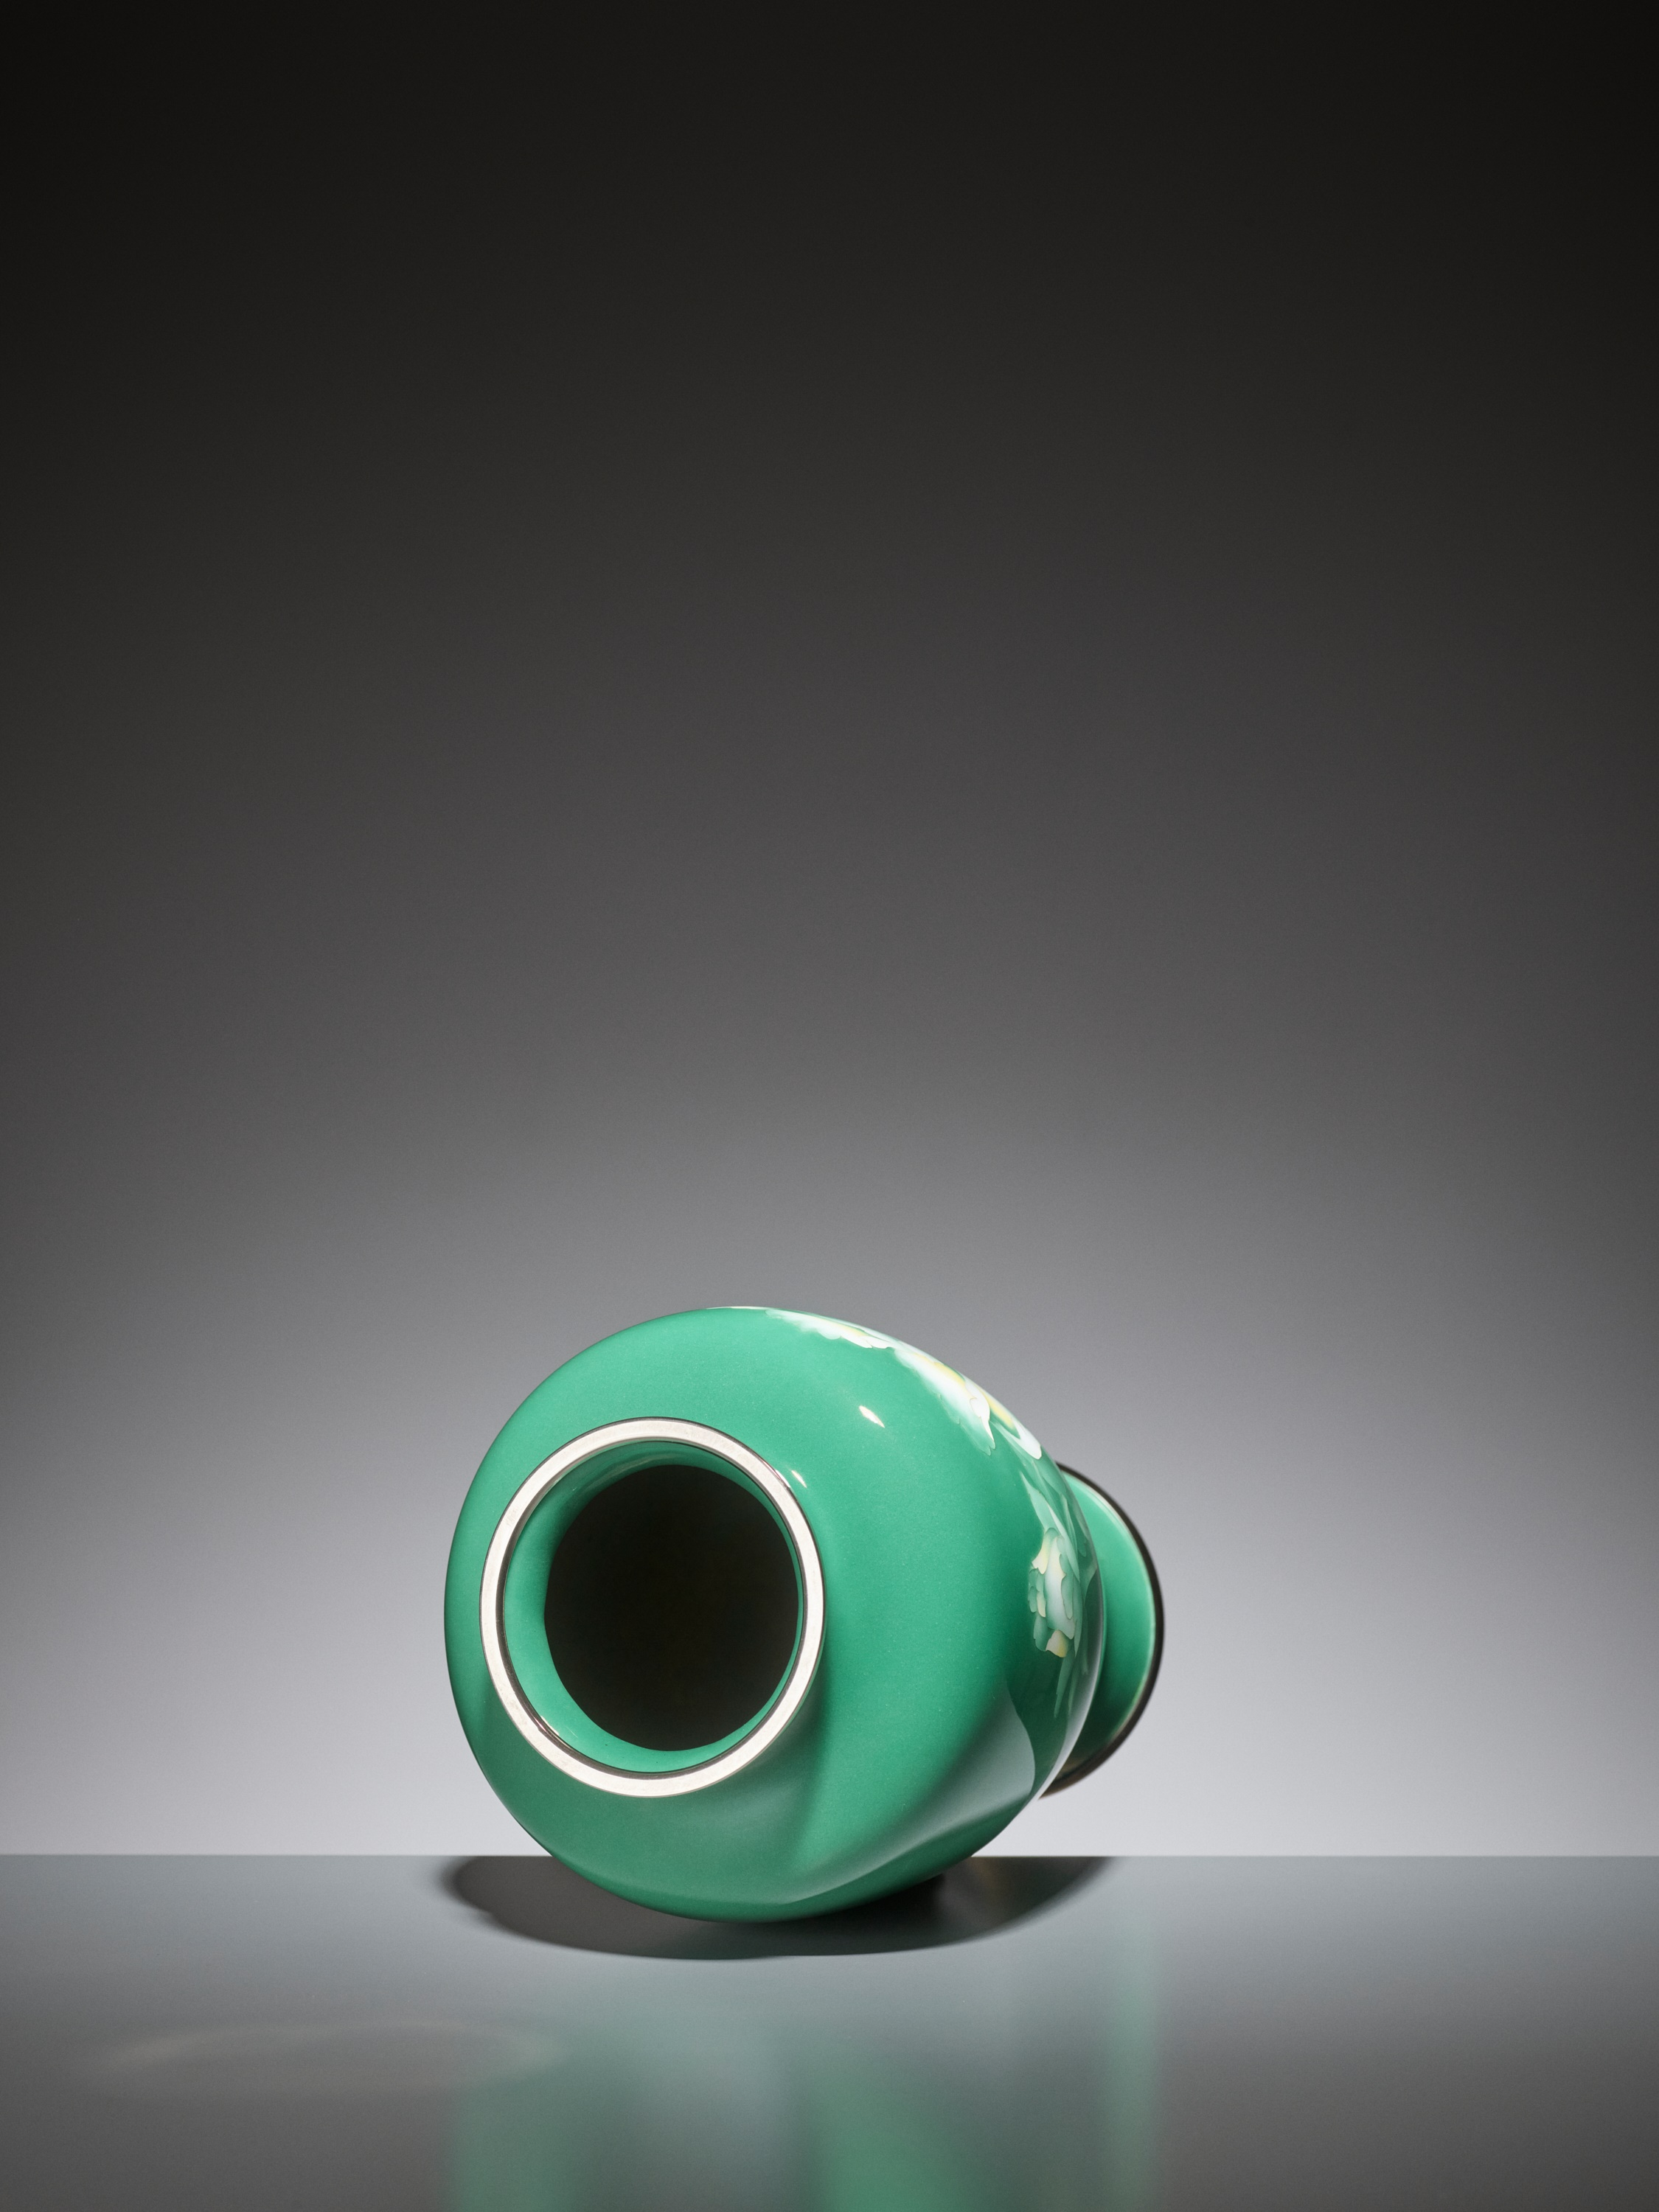 AN EMERALD GREEN CLOISONNE ENAMEL VASE WITH PEONY, ATTRIBUTED TO THE WORKSHOP OF ANDO JUBEI - Image 5 of 6